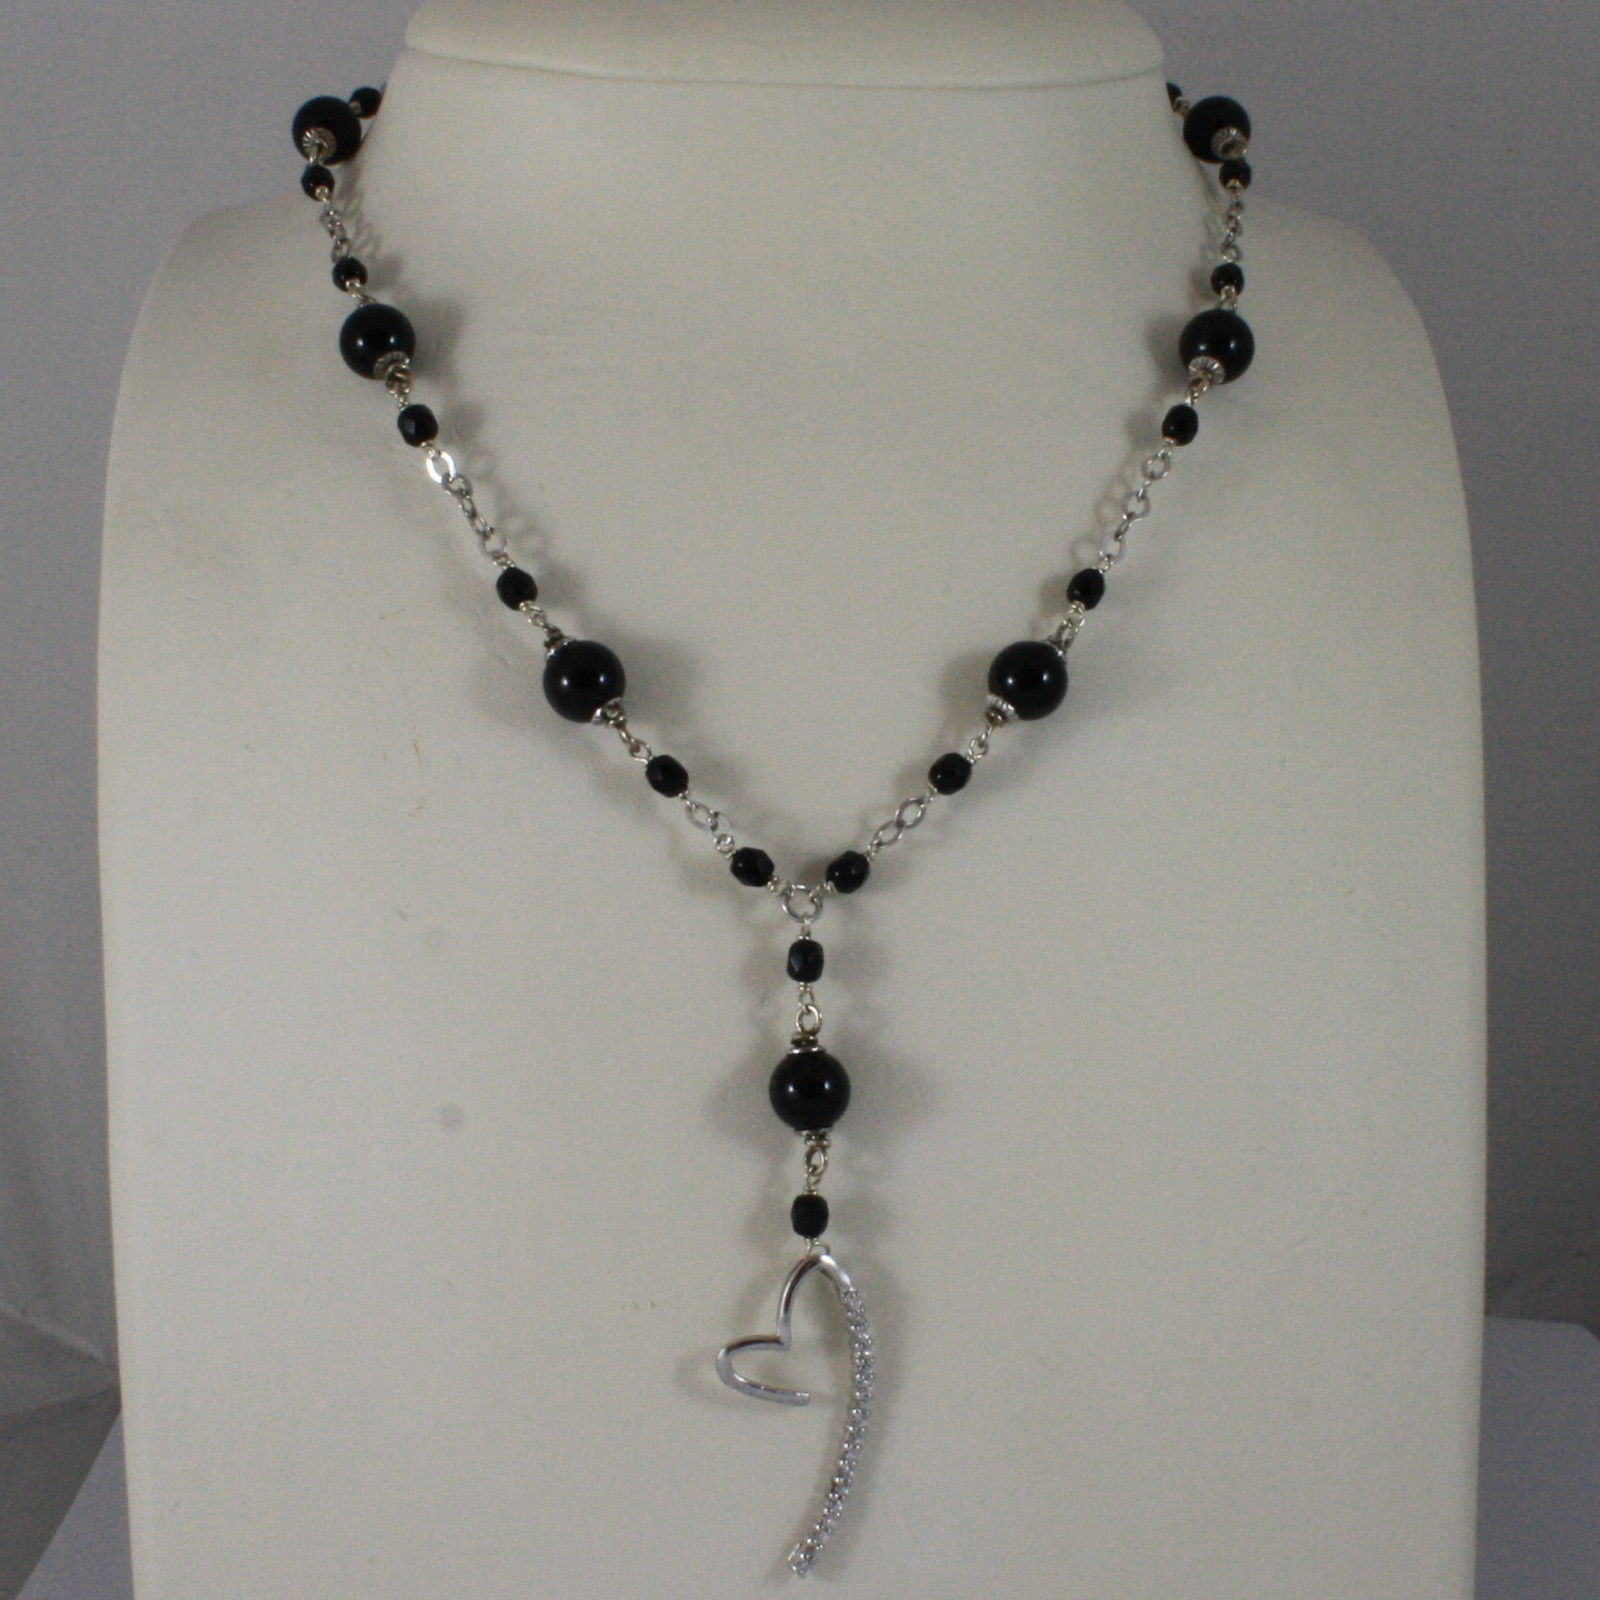 .925 SILVER RHODIUM NECKLACE WITH BLACK ONYX AND EXTENDED HEART WITH ZIRCONIA